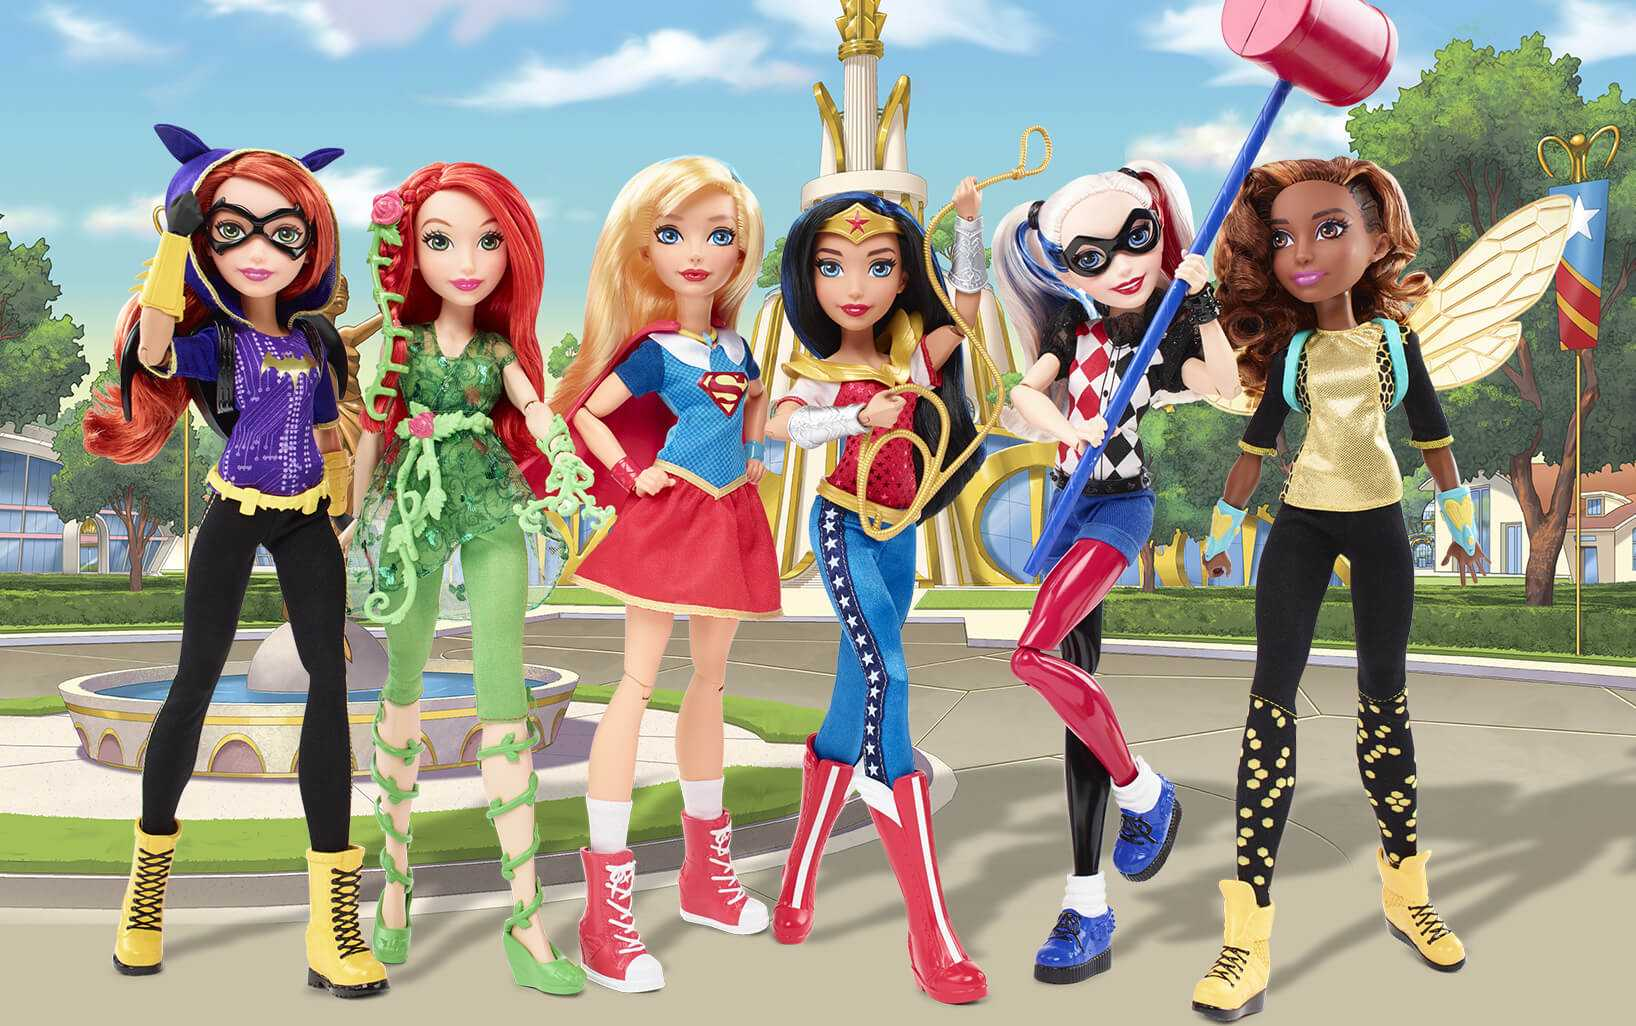 Mattel Promotes Girl Power With New DC Superhero Action Figure Line | Mattel